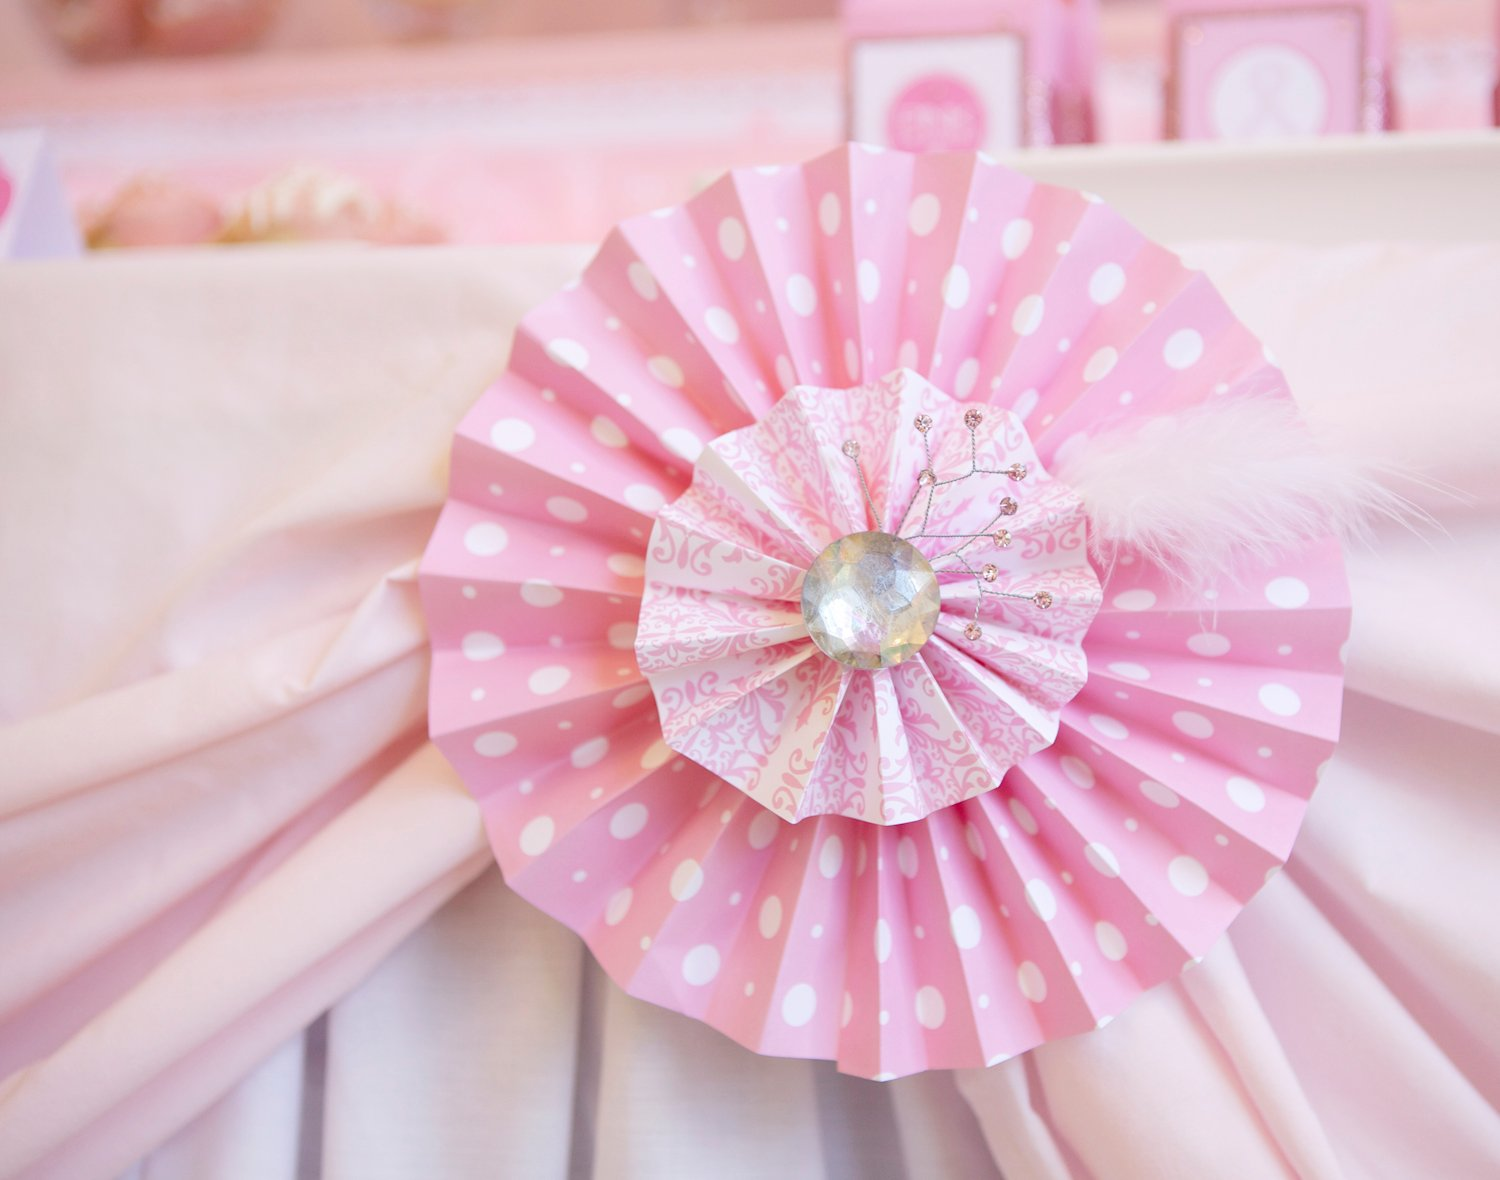 Savannah Wedding Planning and Bridal Boutique: Ivory and Beau: Hope for a Cure - Breast Cancer Awareness Month